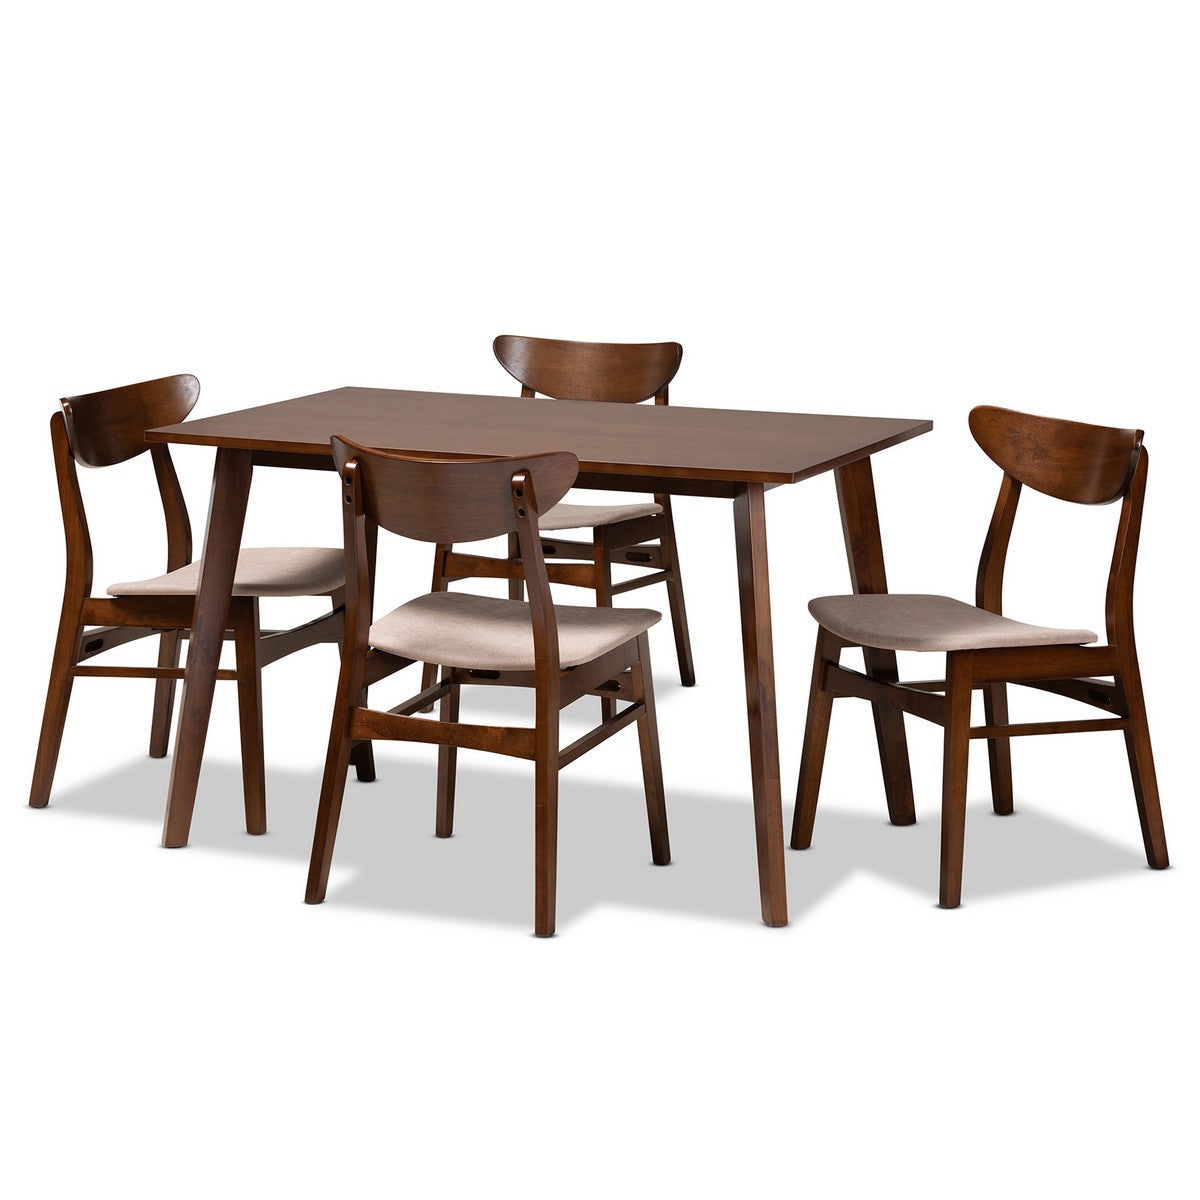 Baxton Studio Orion Mid-Century Modern Transitional Light Beige Fabric Upholstered and Walnut Brown Finished Wood 5-Piece Dining Set Baxton Studio-Dining Sets-Minimal And Modern - 1